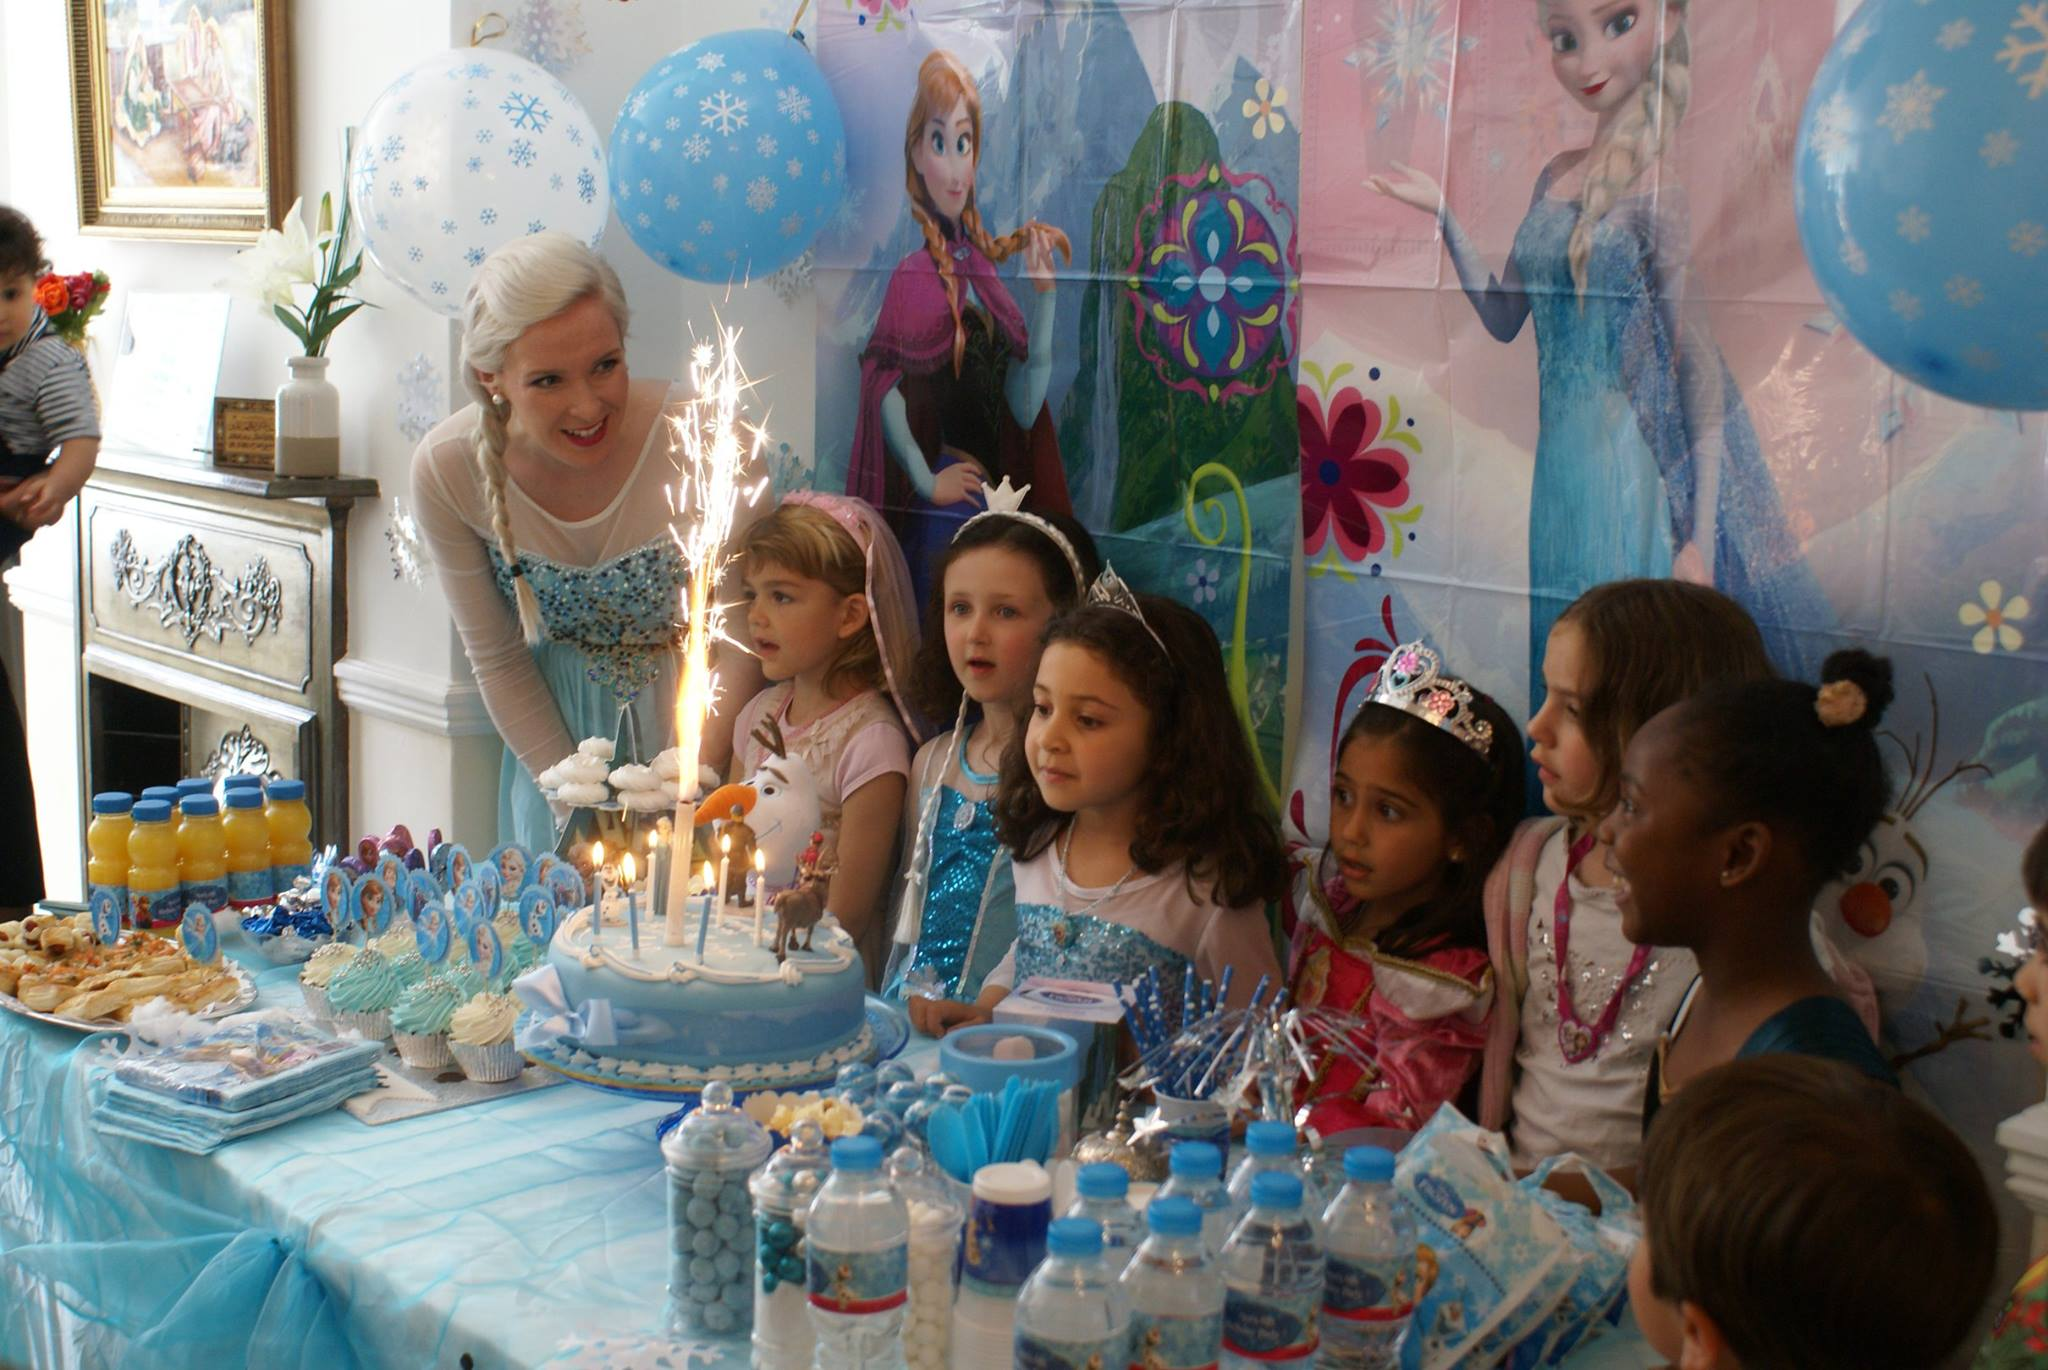 Frozen Party ESSEX LONDON AMAZING MAGICAL Princess Parties - Childrens birthday entertainment essex